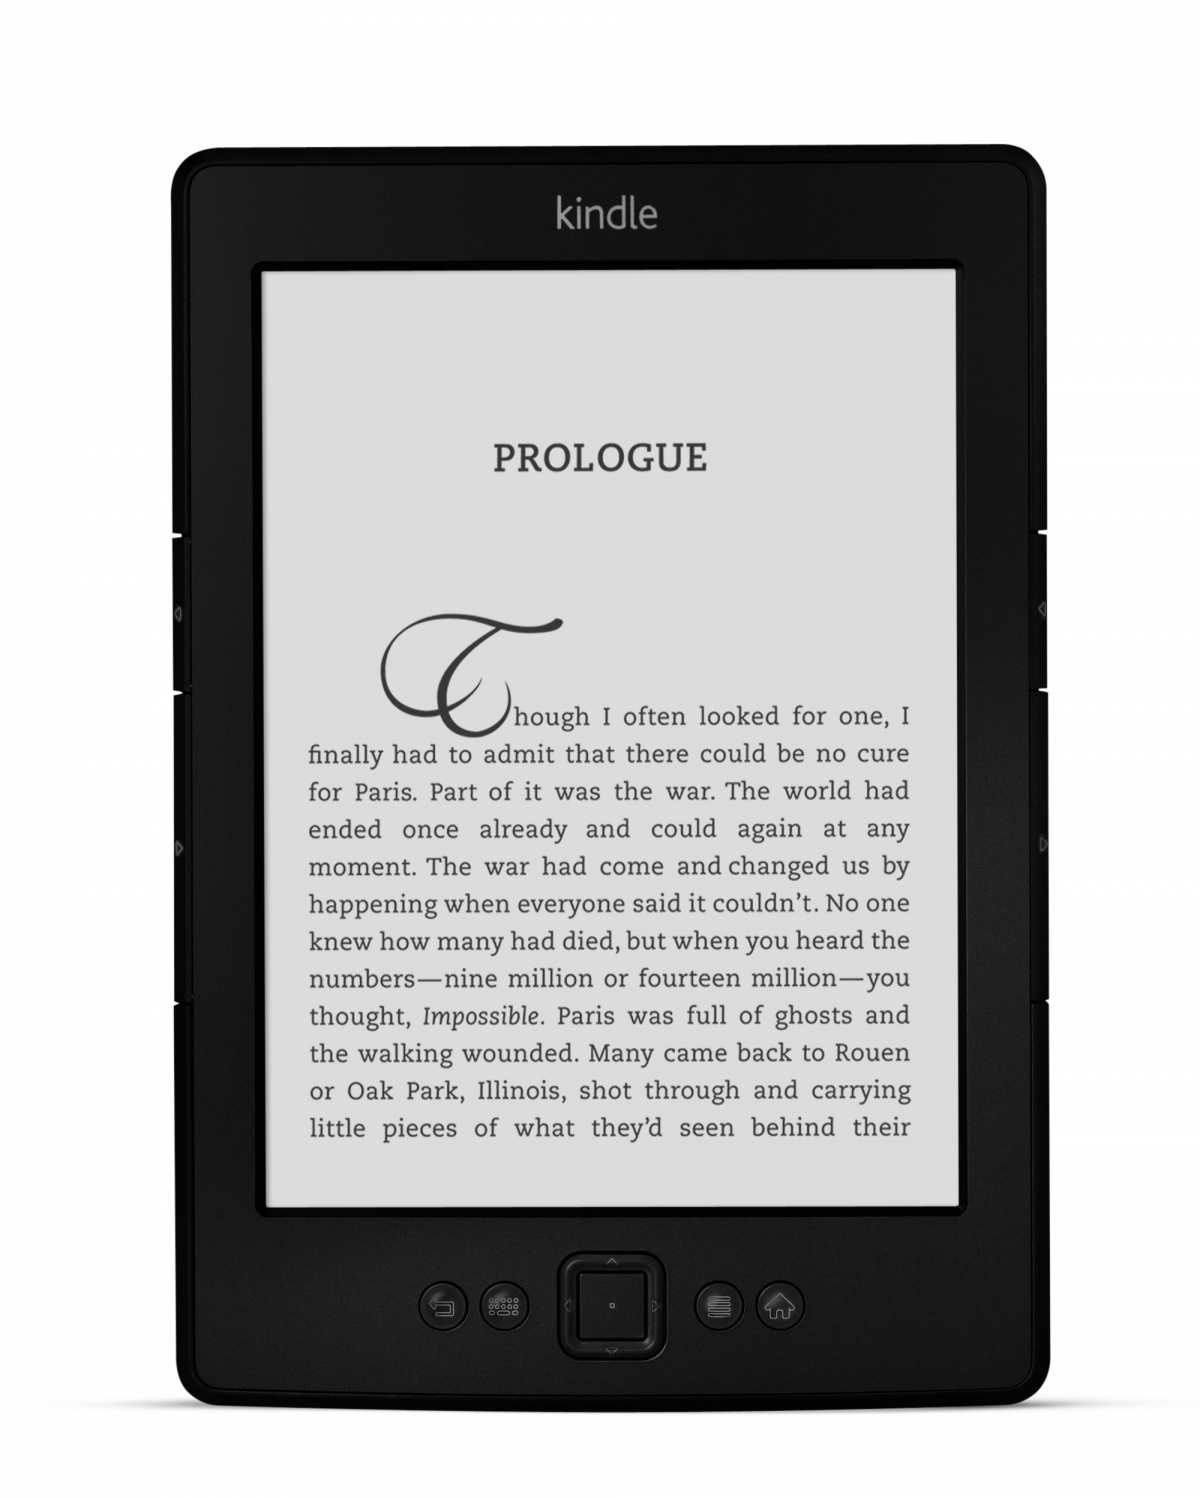 Amazon Kindle for Windows 10 free download on 10 App Store